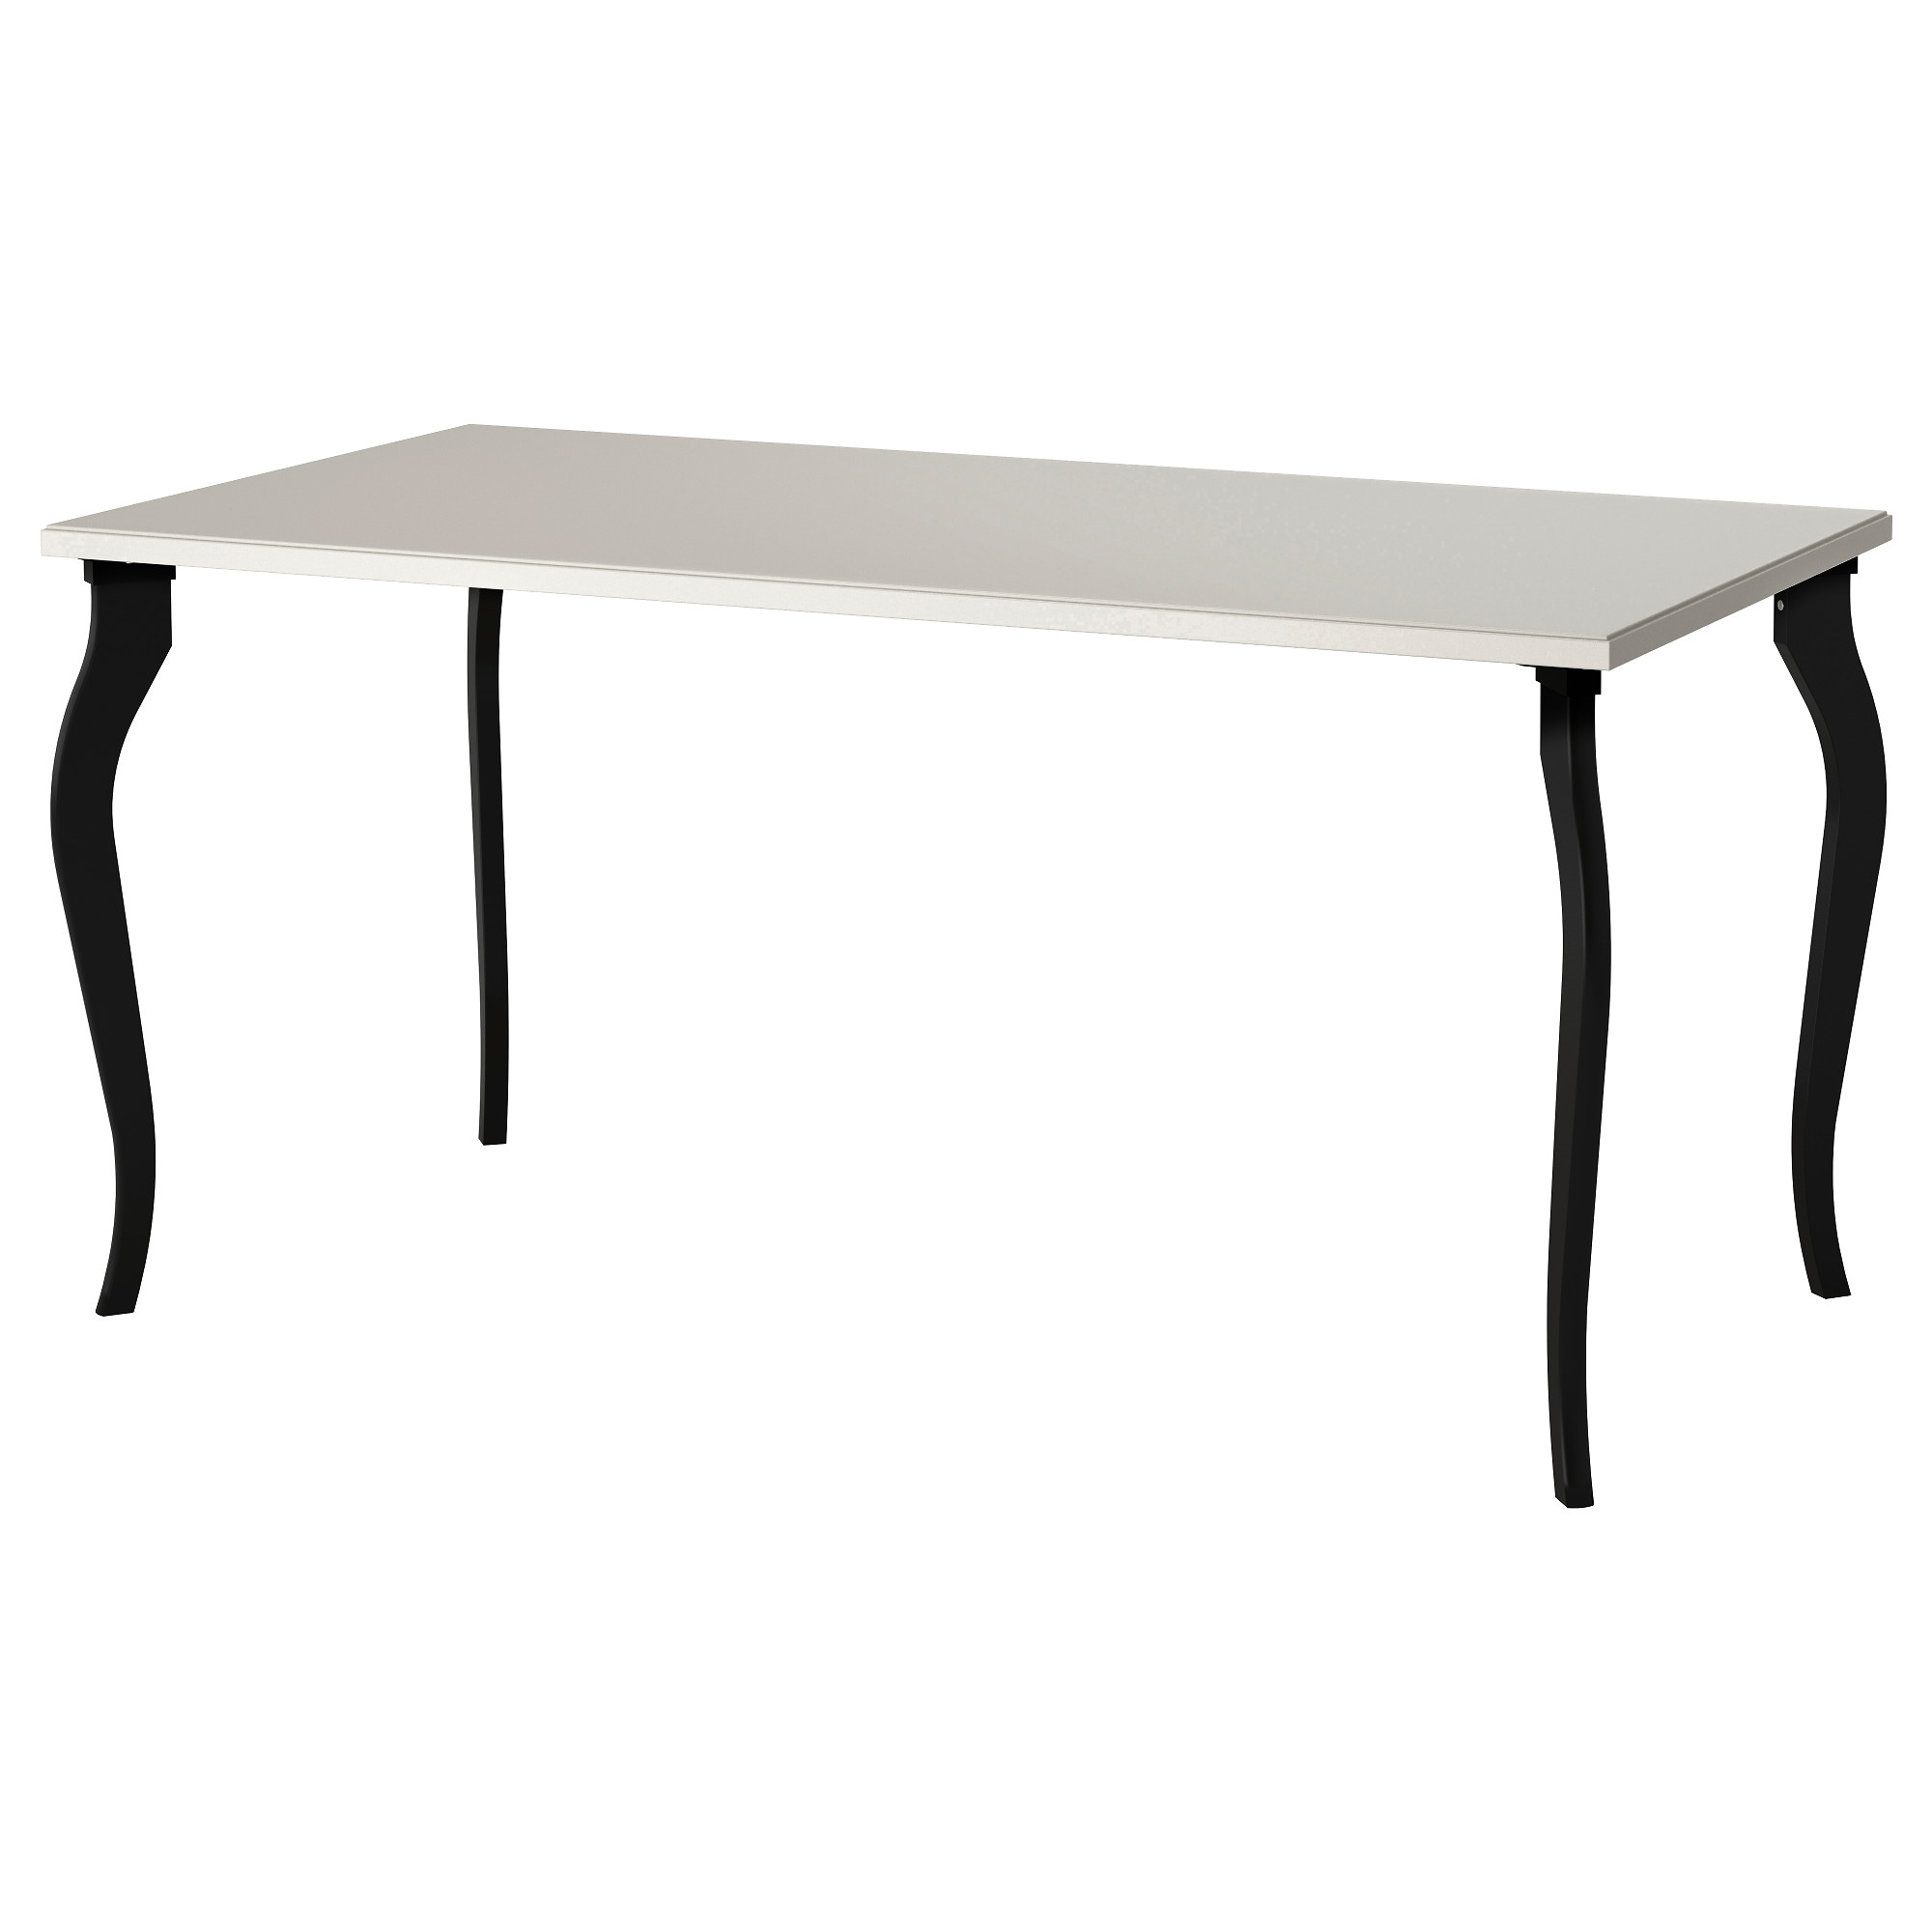 KLIMPEN / LALLE Table - IKEA